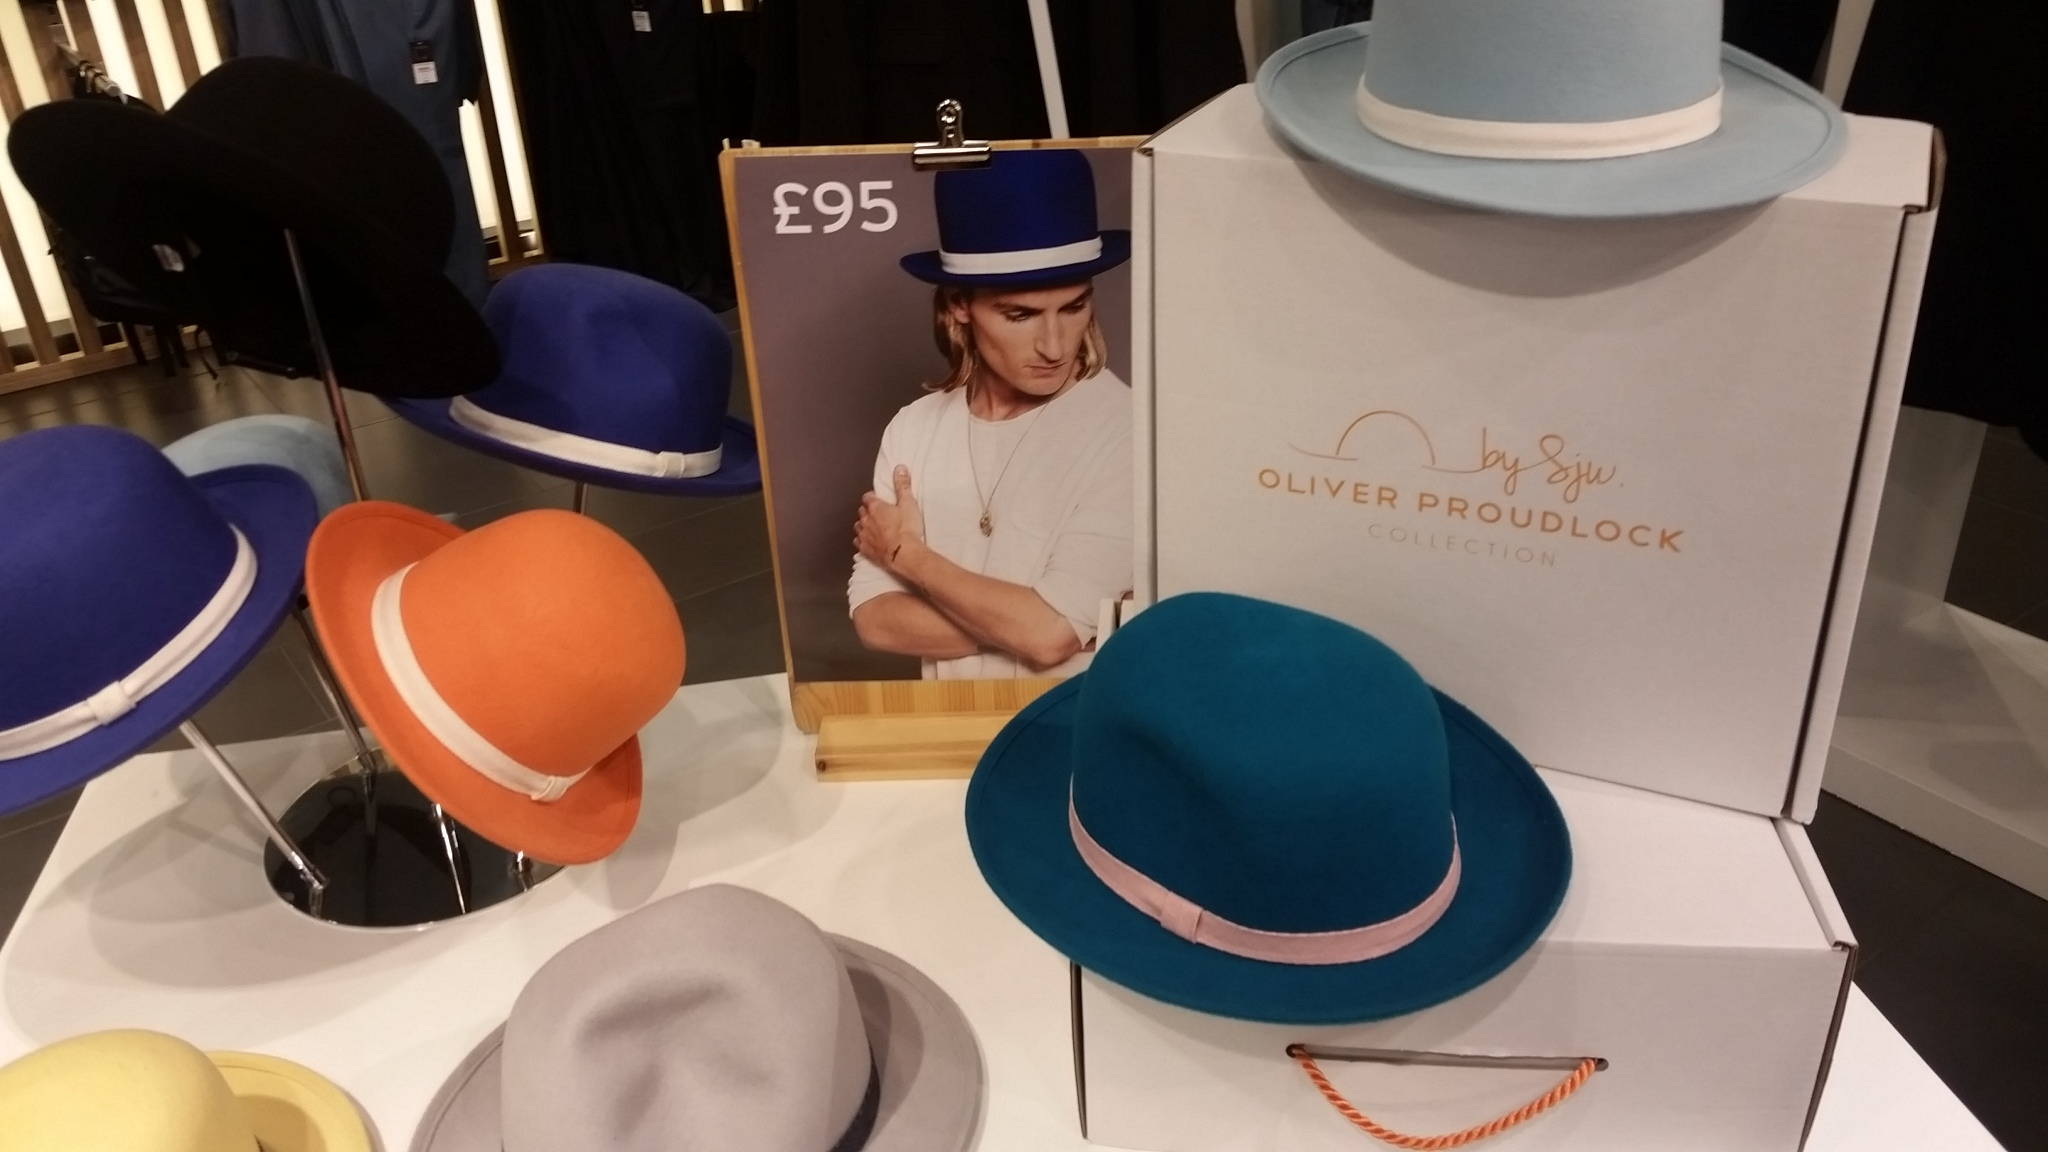 BySju x Oliver Proudlock Bowler Hat Collection BySju x Oliver Proudlock Bowler Hat Collection new pics